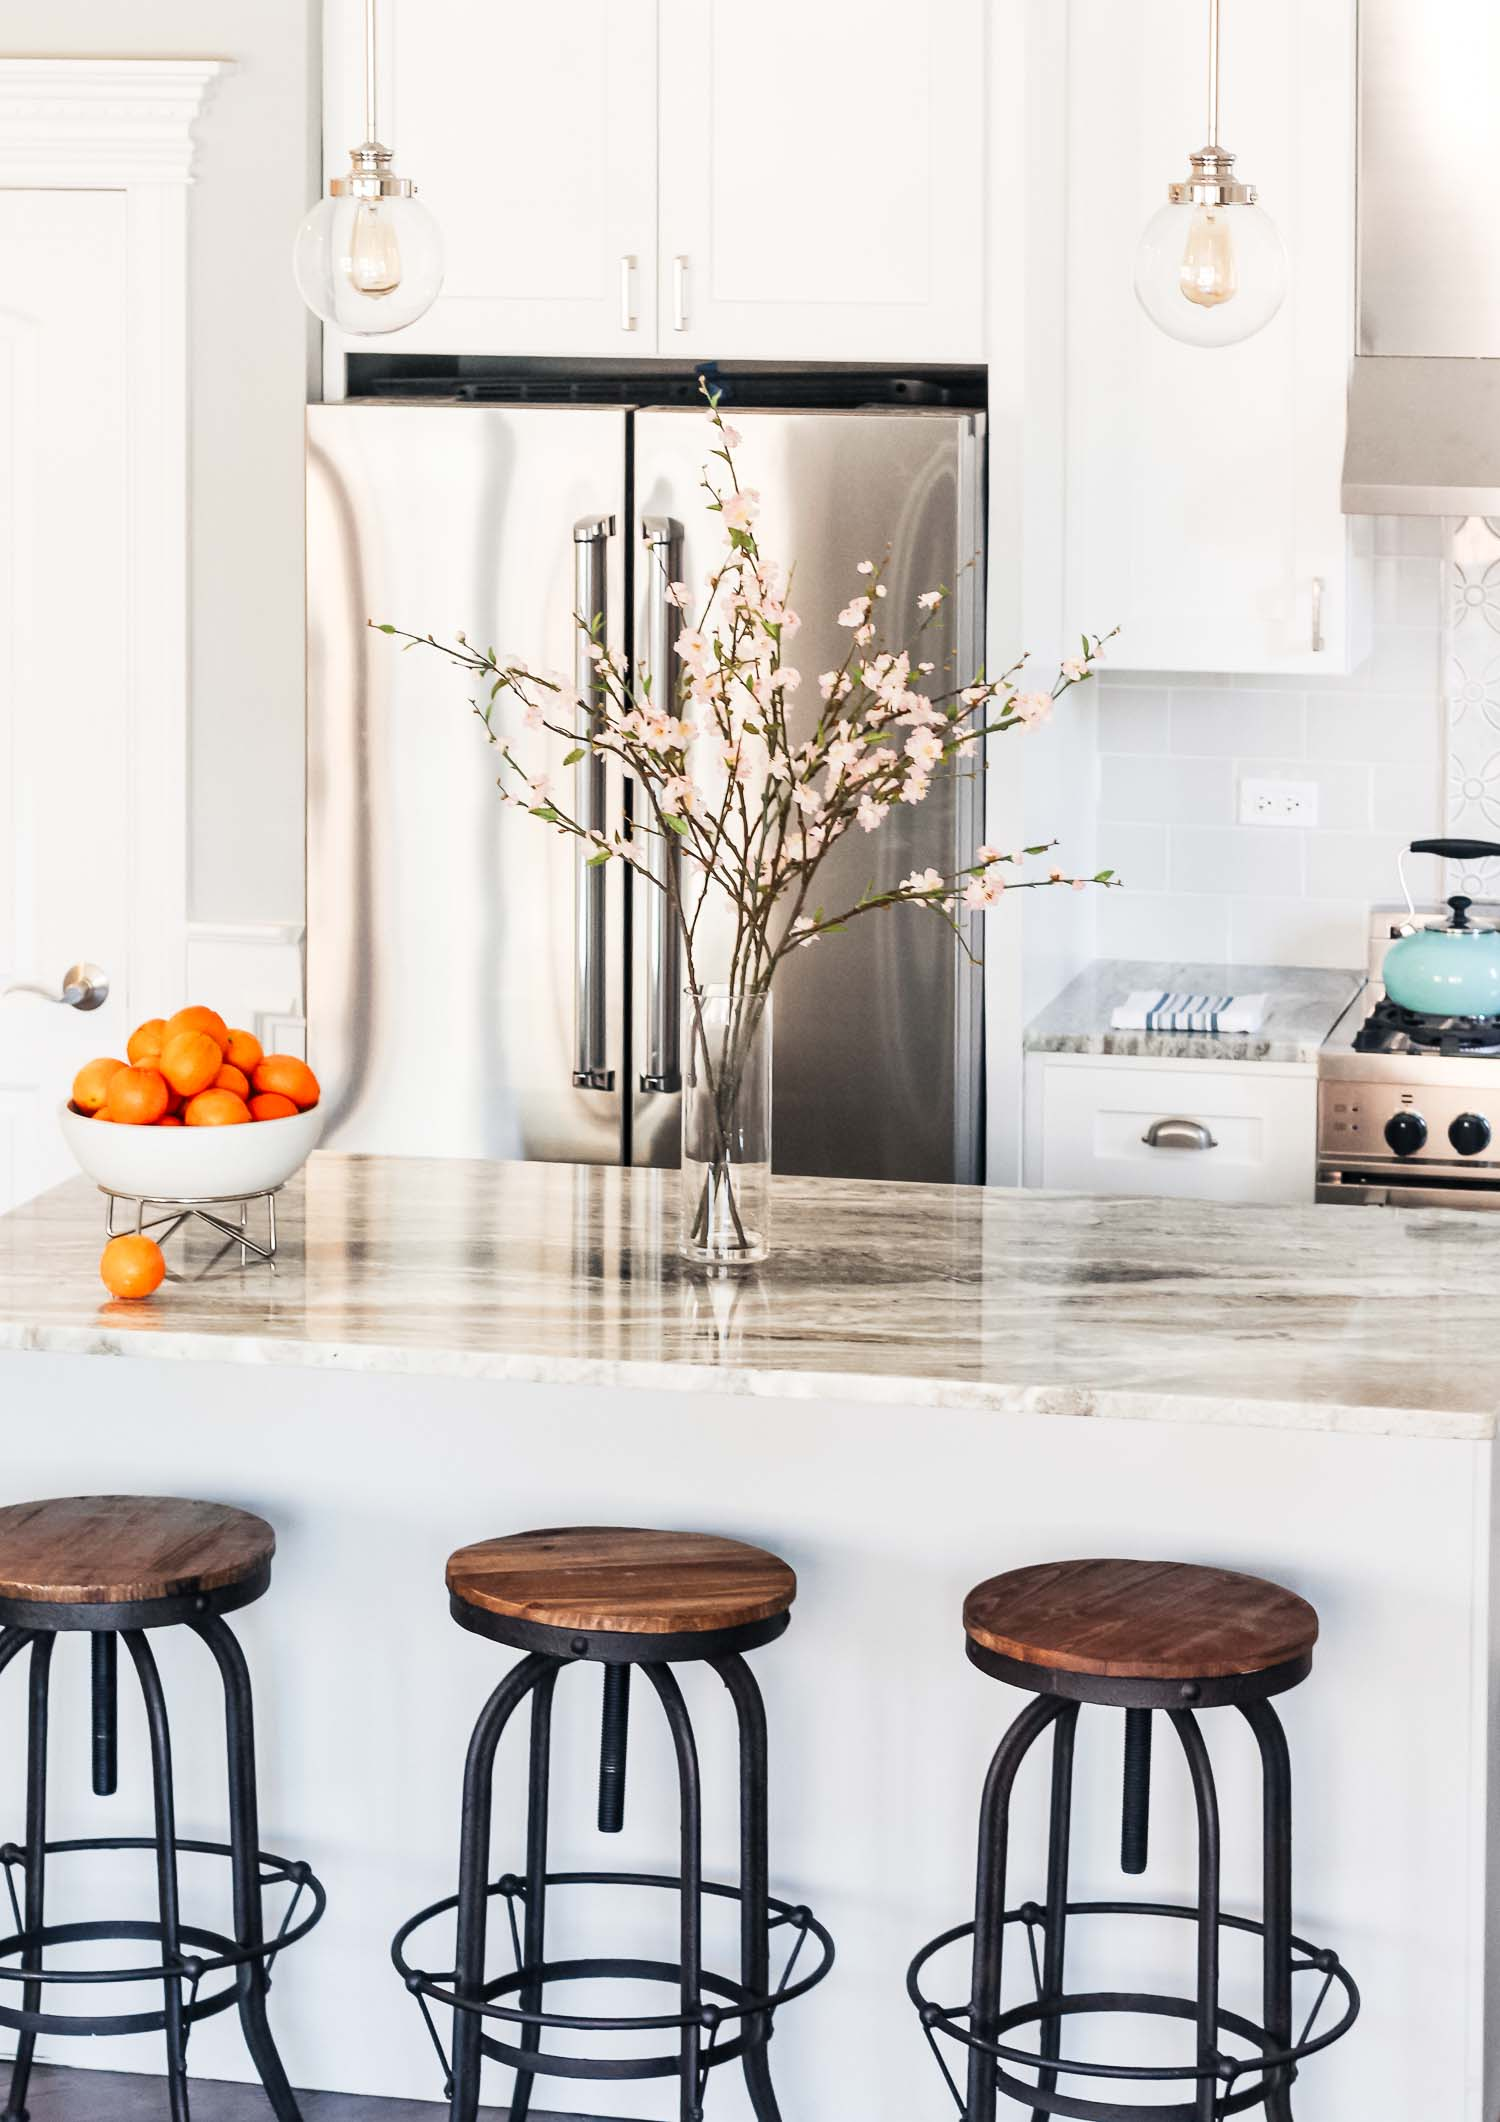 Since this condo was going on the market, the design needed to appeal to a variety of buyers. My goal was for the space to feel beautiful and classic, with a modern touch. Which pretty much sums up my design aesthetic! Sometimes a little eclectic and industrial too but I love mixing traditional, modern and vintage finds to create a timeless space.